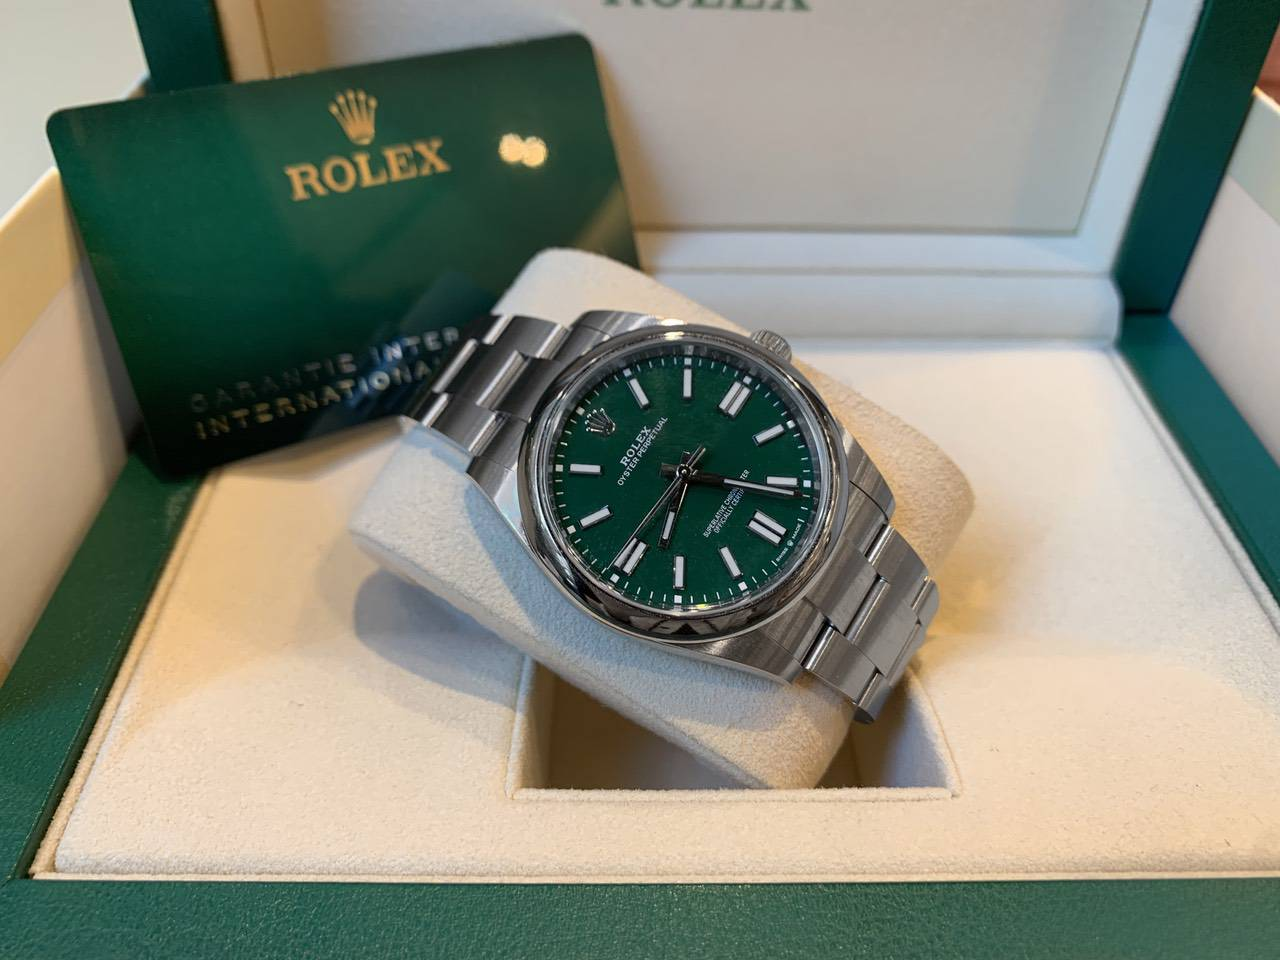 Rolex-Oyster-Perpetual-Green-124300-5